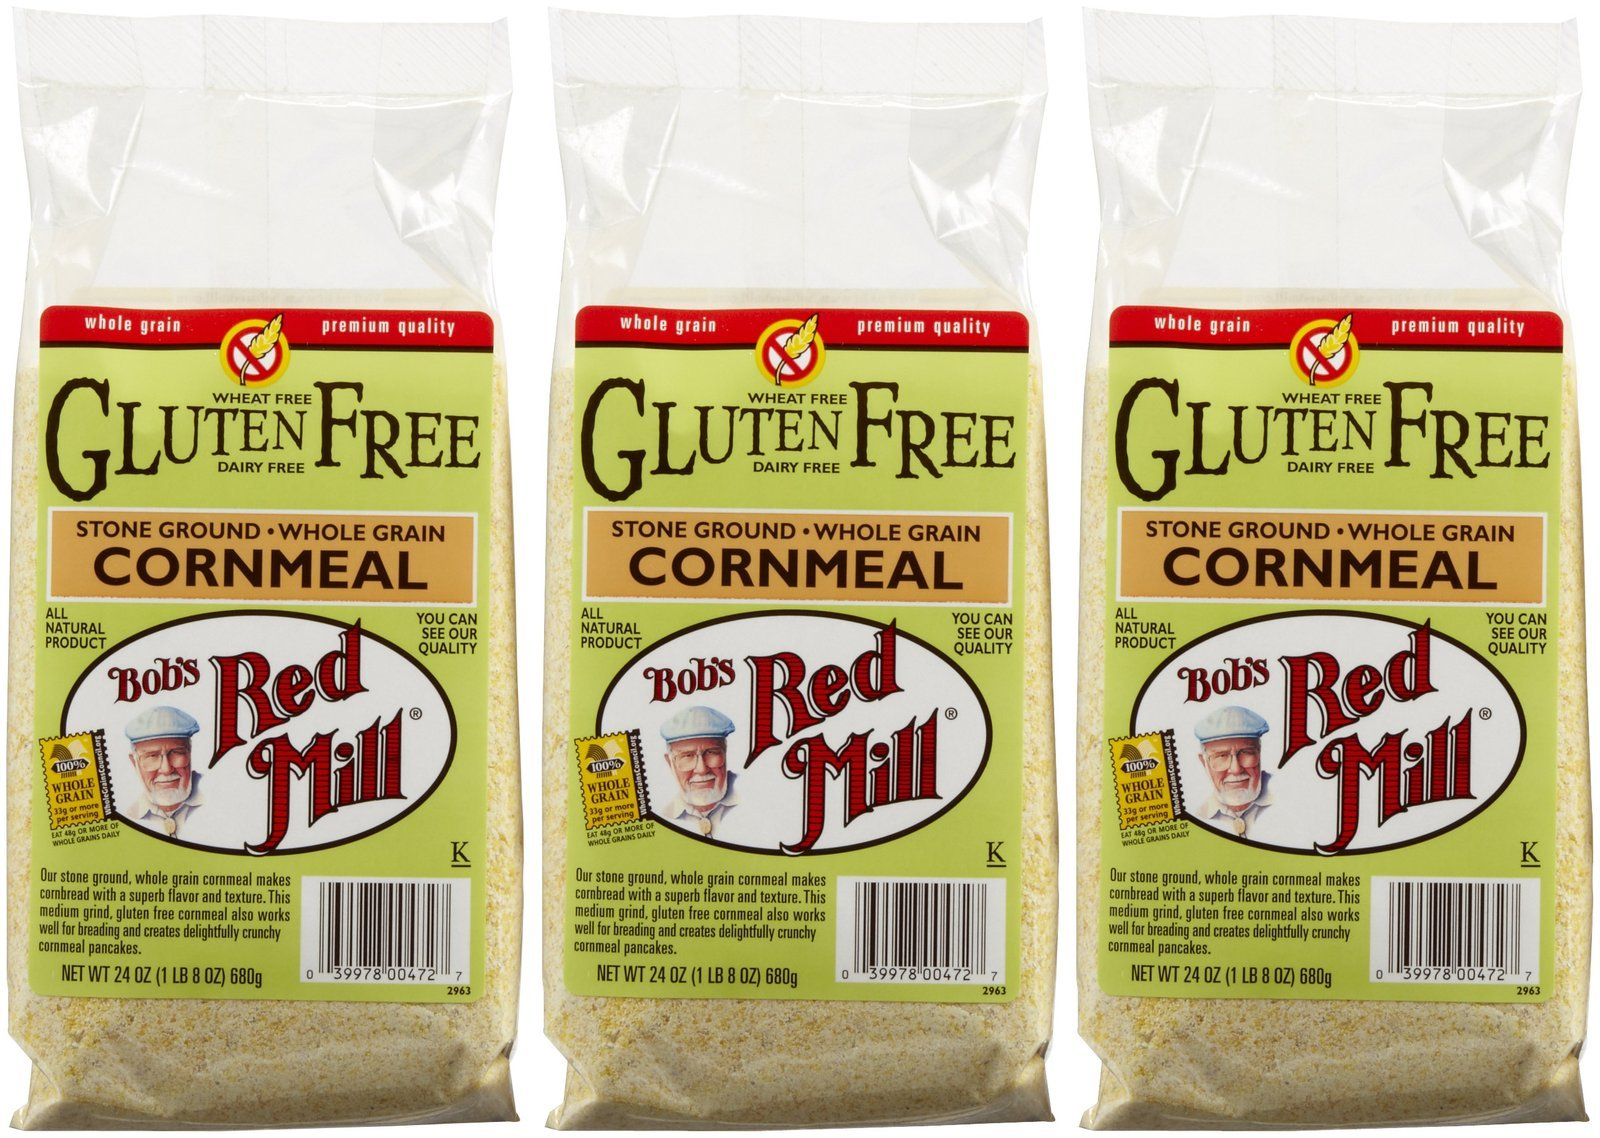 Bob's Red Mill Gluten Free Cornmeal - 24 oz - 3 Pack